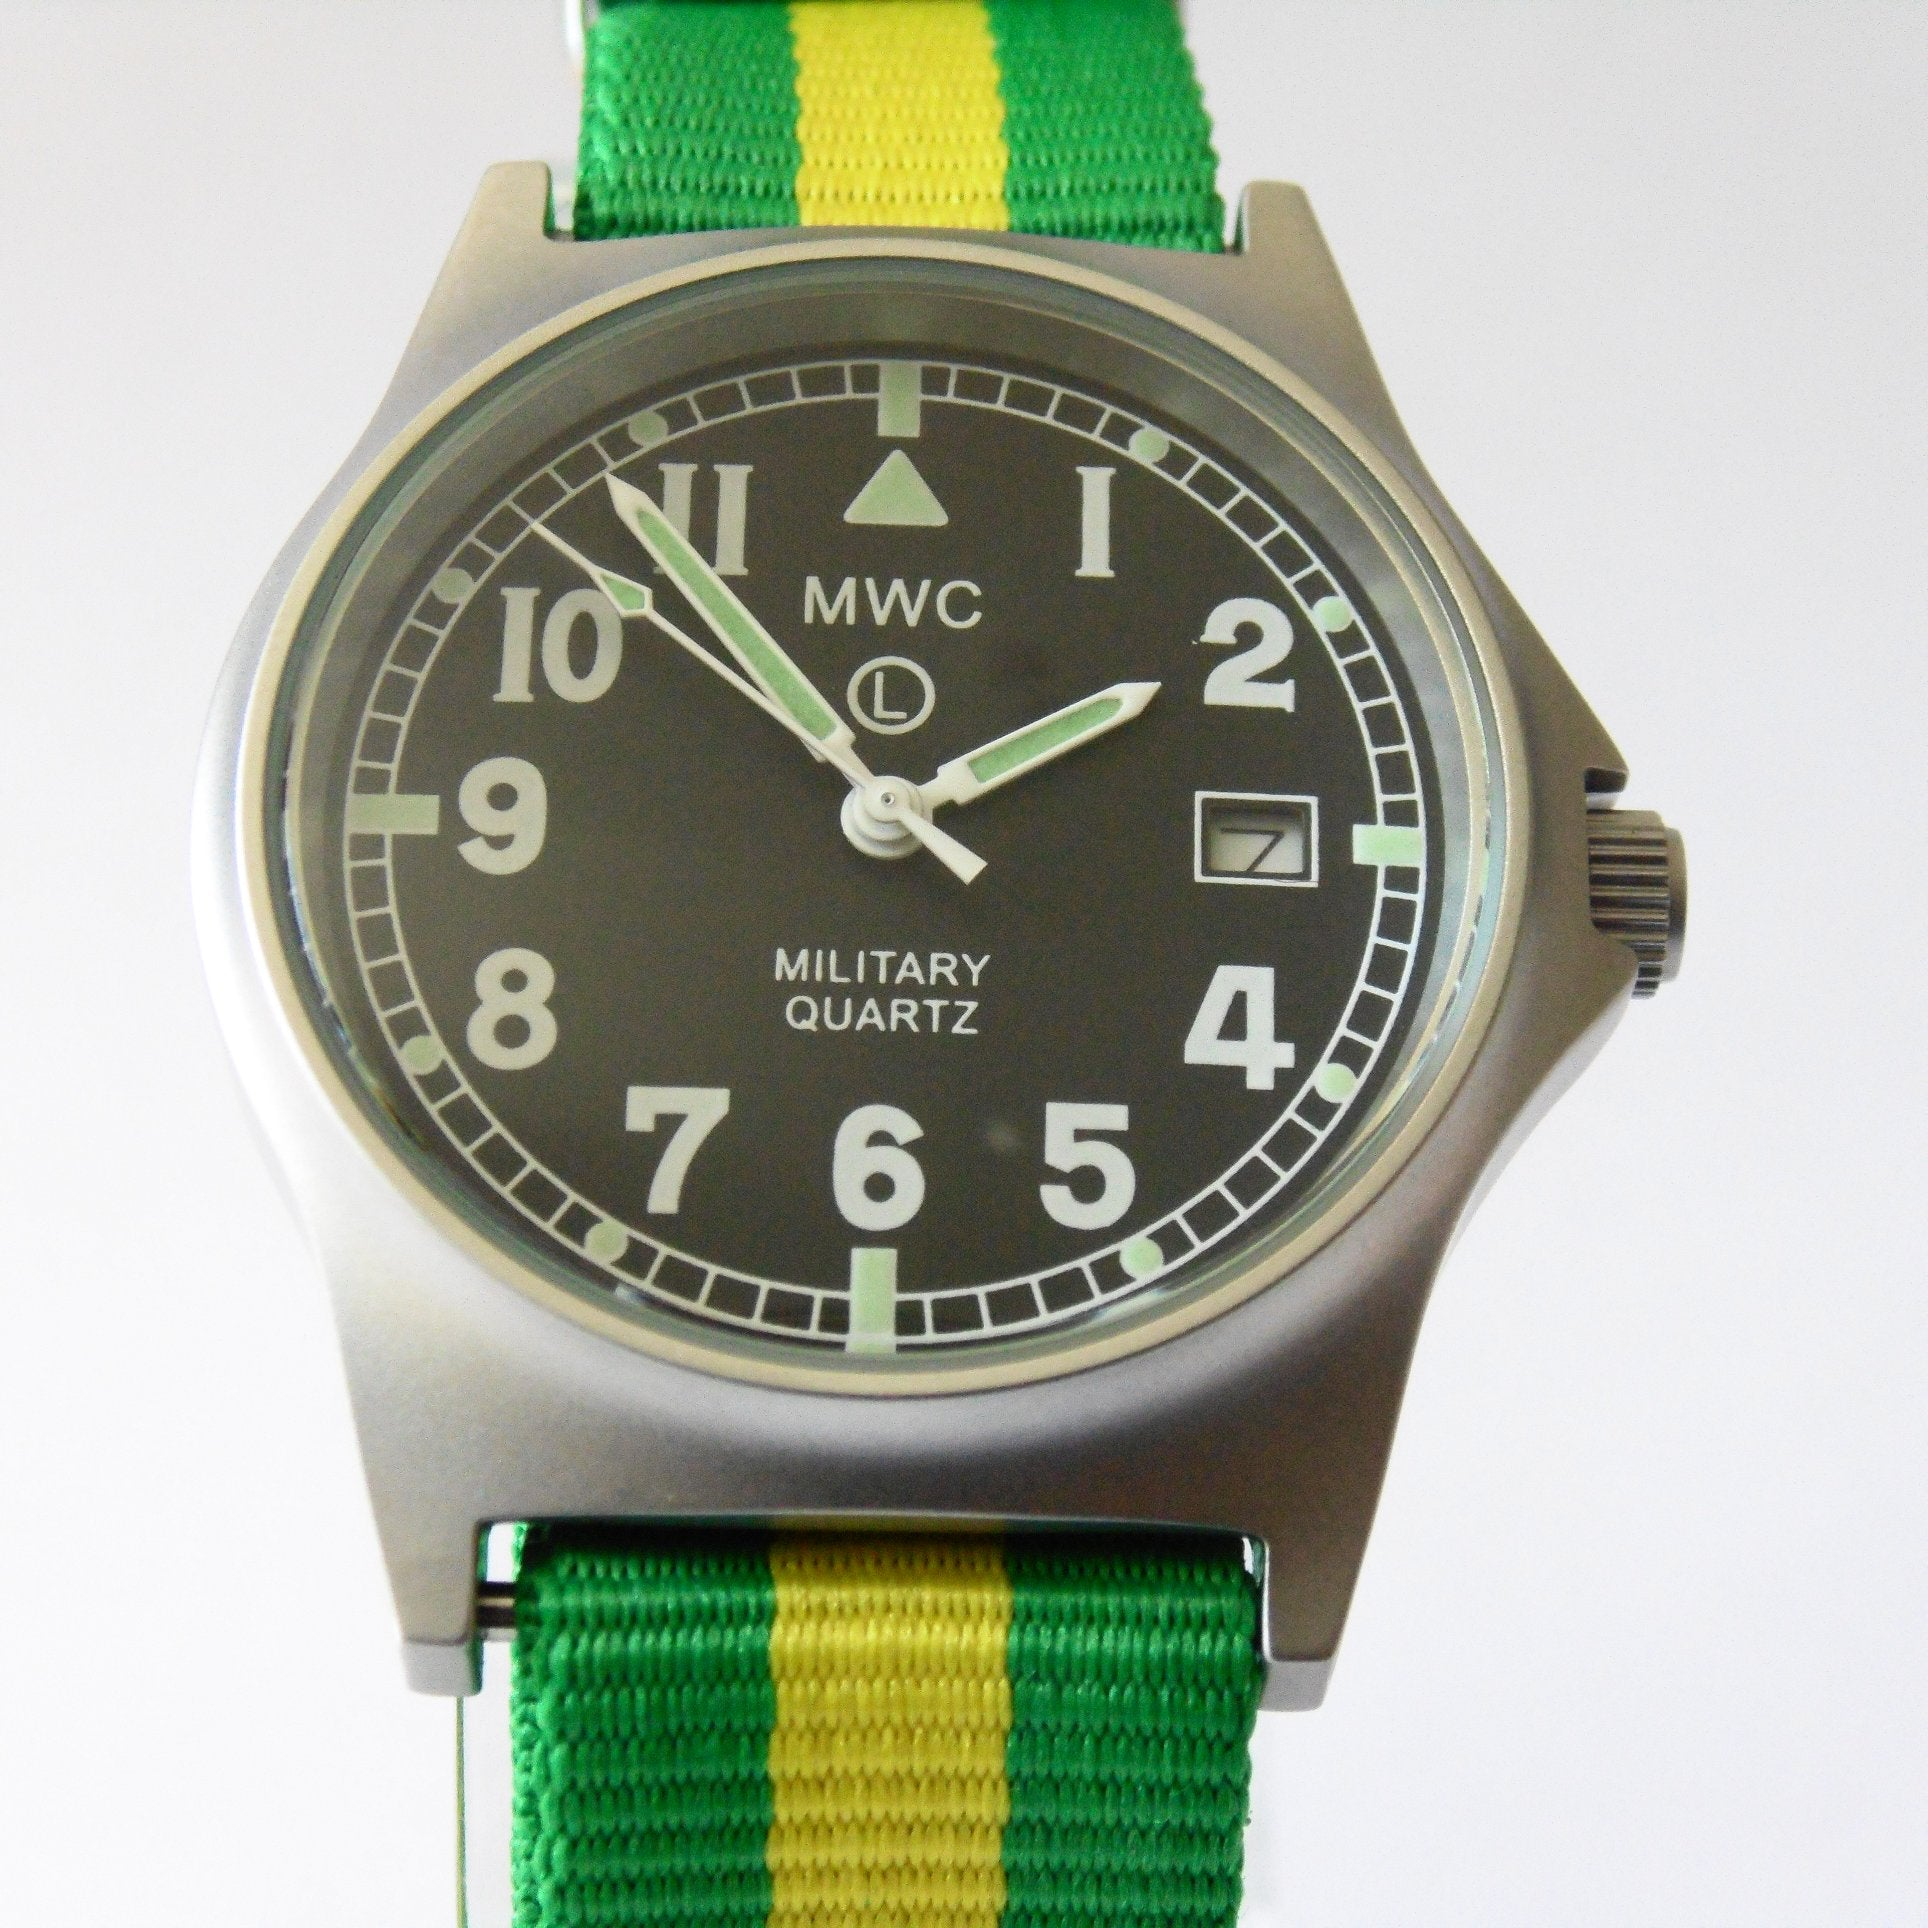 MWC G10 LM Military Watch (Brazil Strap) - Watchfinder General - UK suppliers of Russian Vostok Parnis Watches MWC G10  - 1